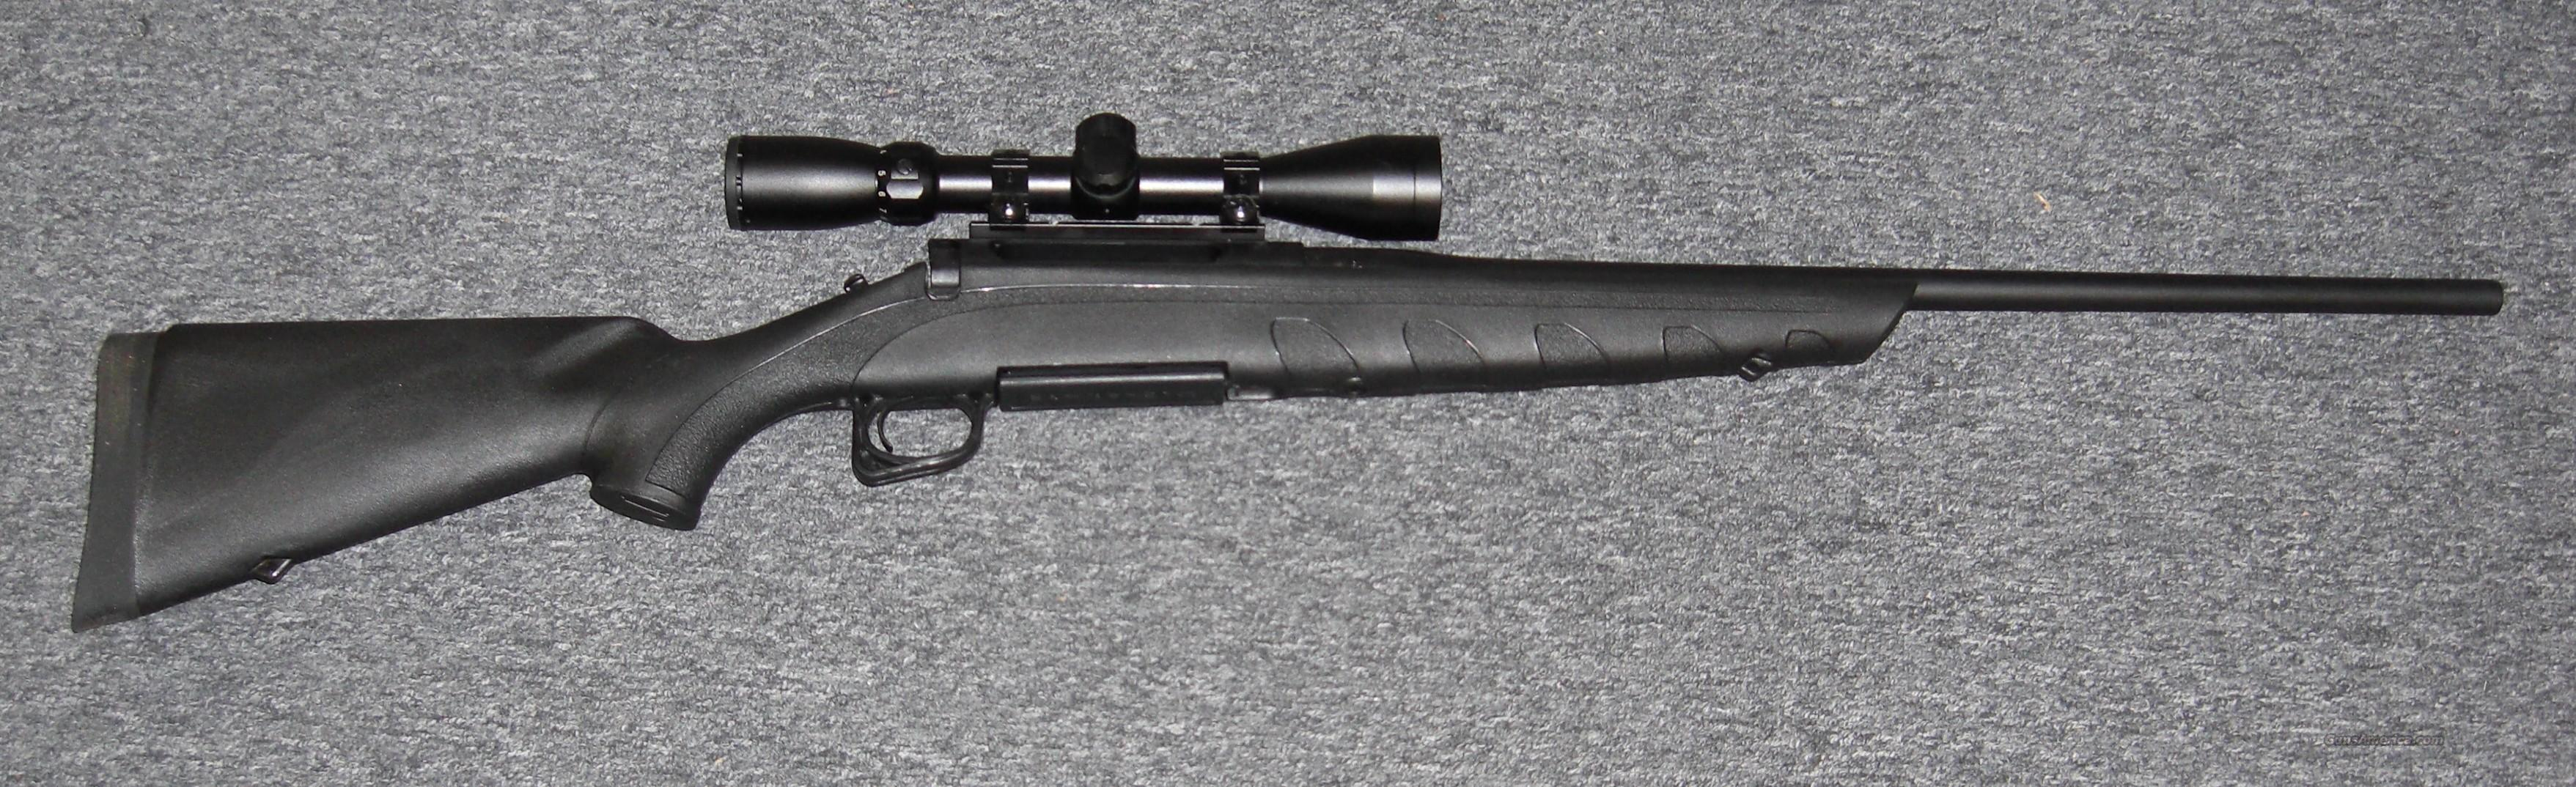 770 w/scope  .270  Guns > Rifles > Remington Rifles - Modern > Model 700 > Sporting